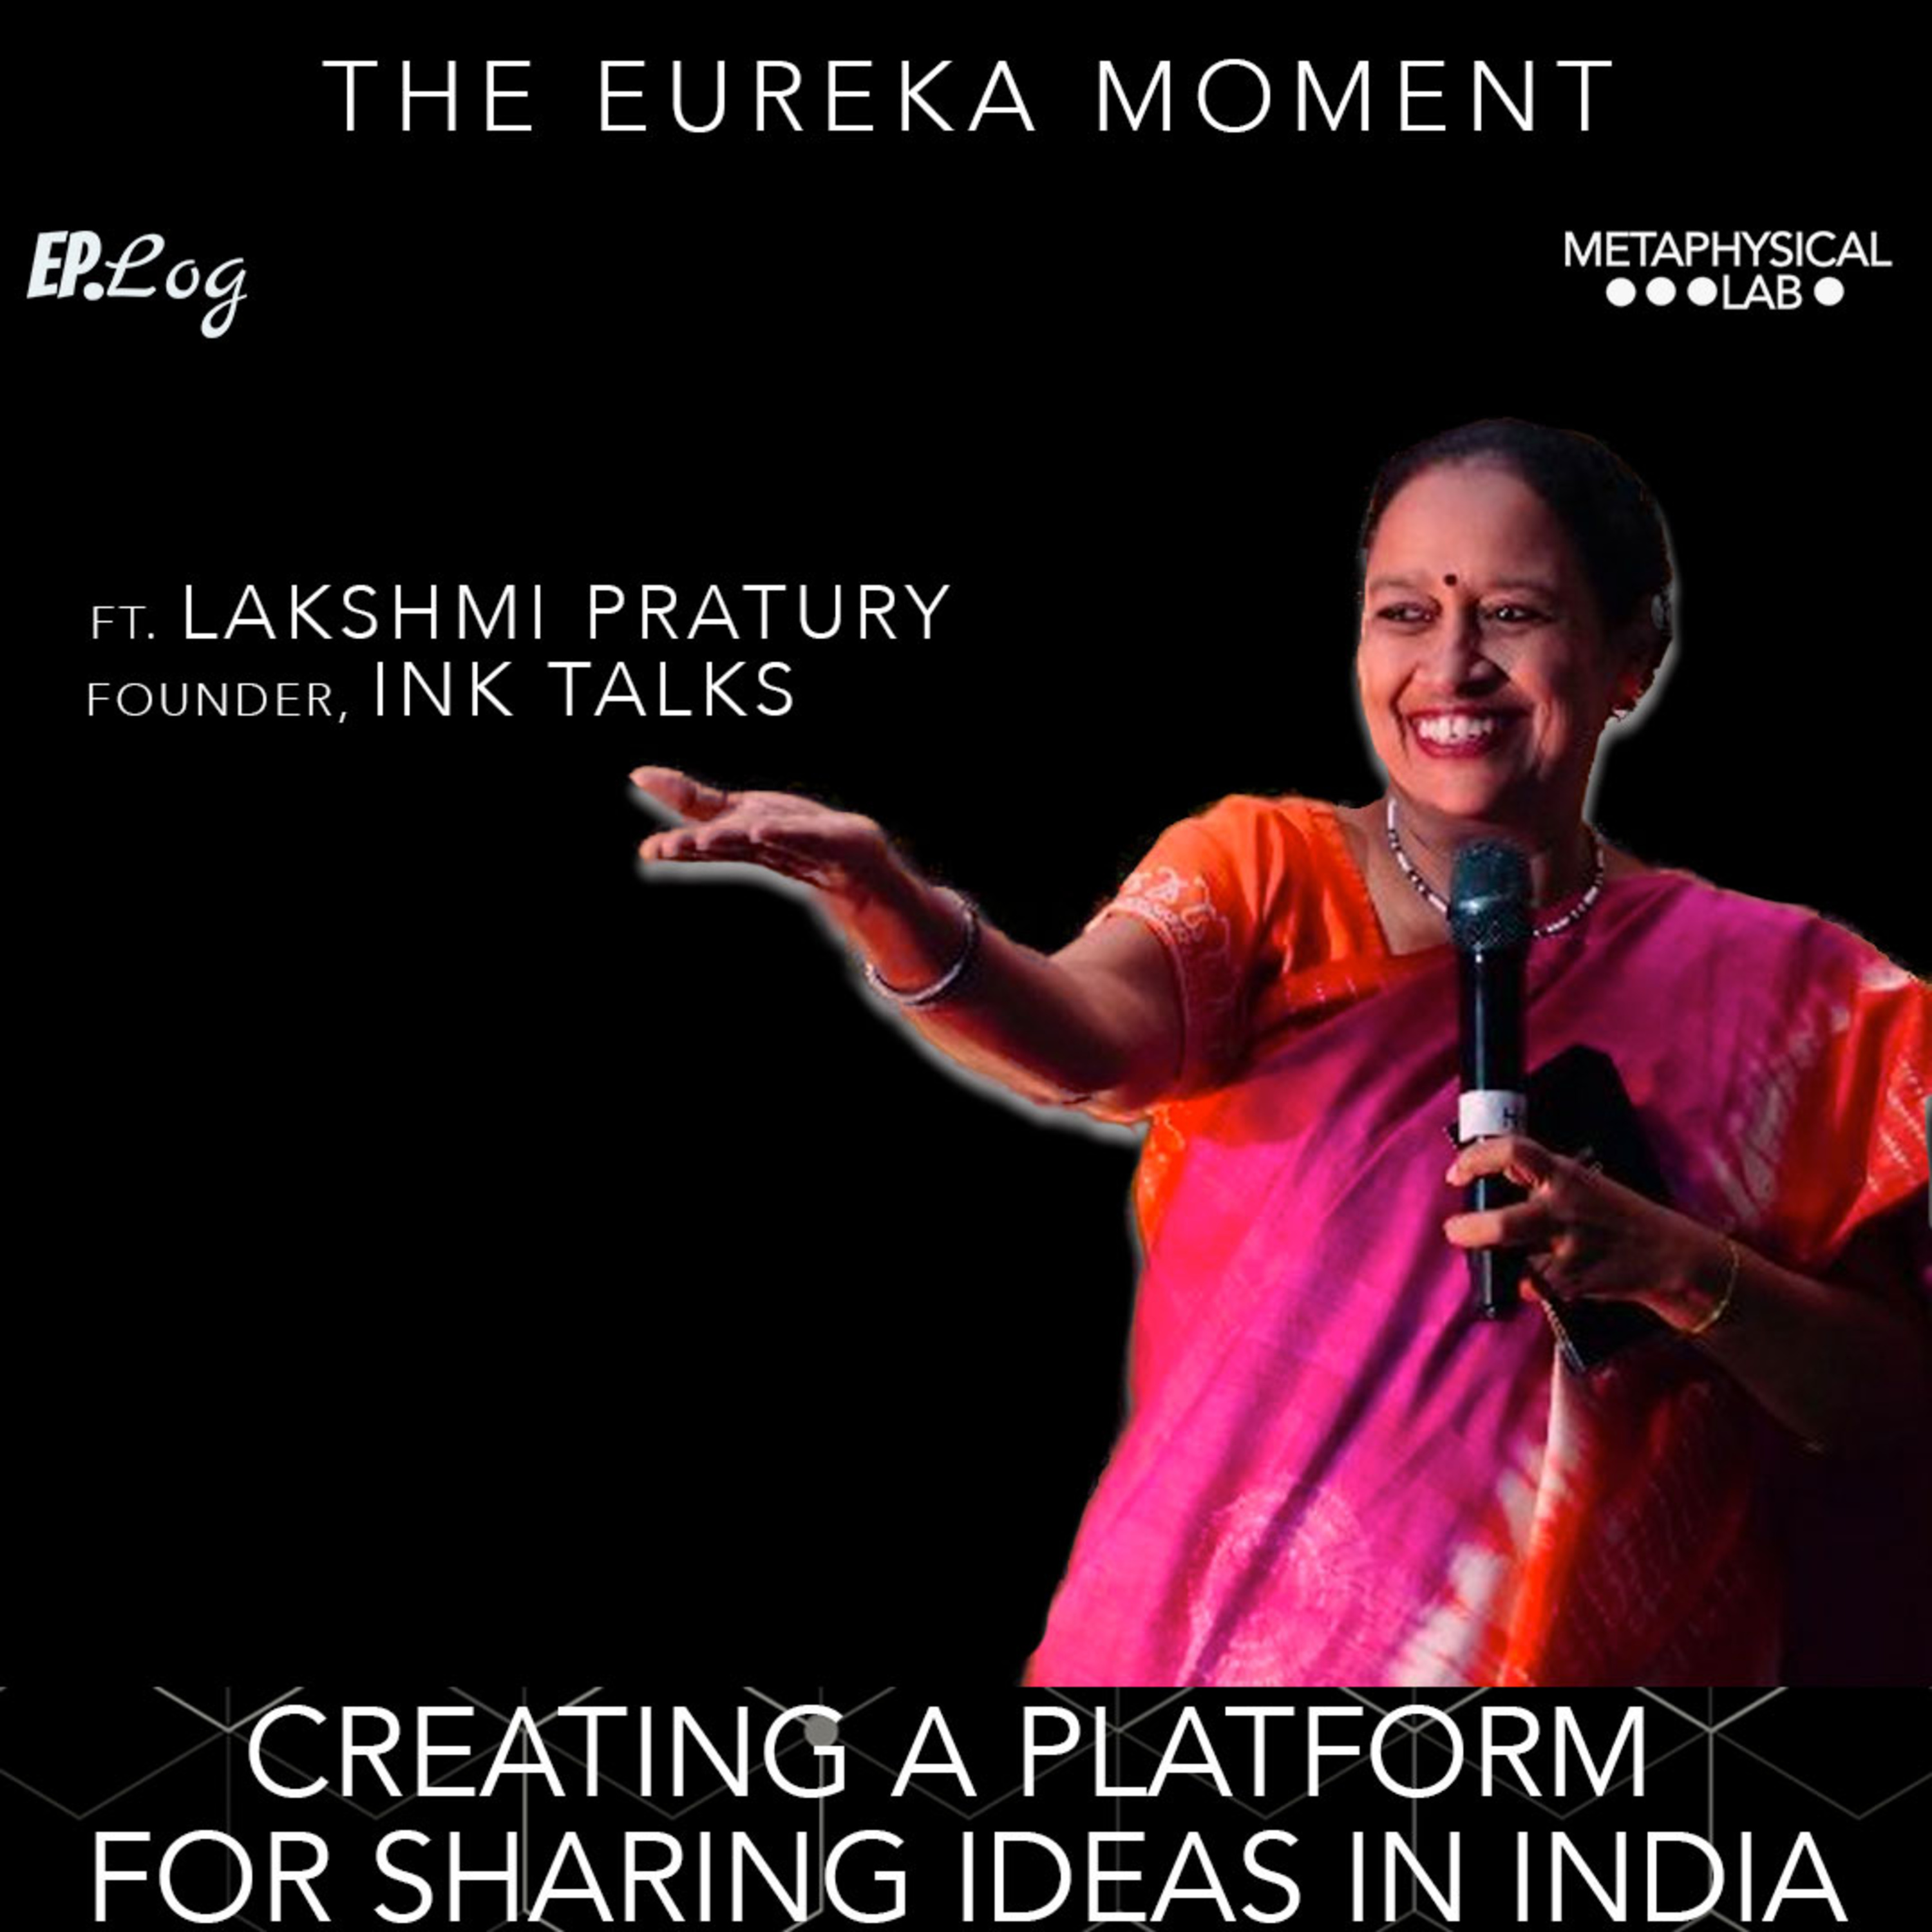 Ep.20 Creating A Platform For Sharing Ideas In India ft. Lakshmi Pratury, Founder - Ink Talks